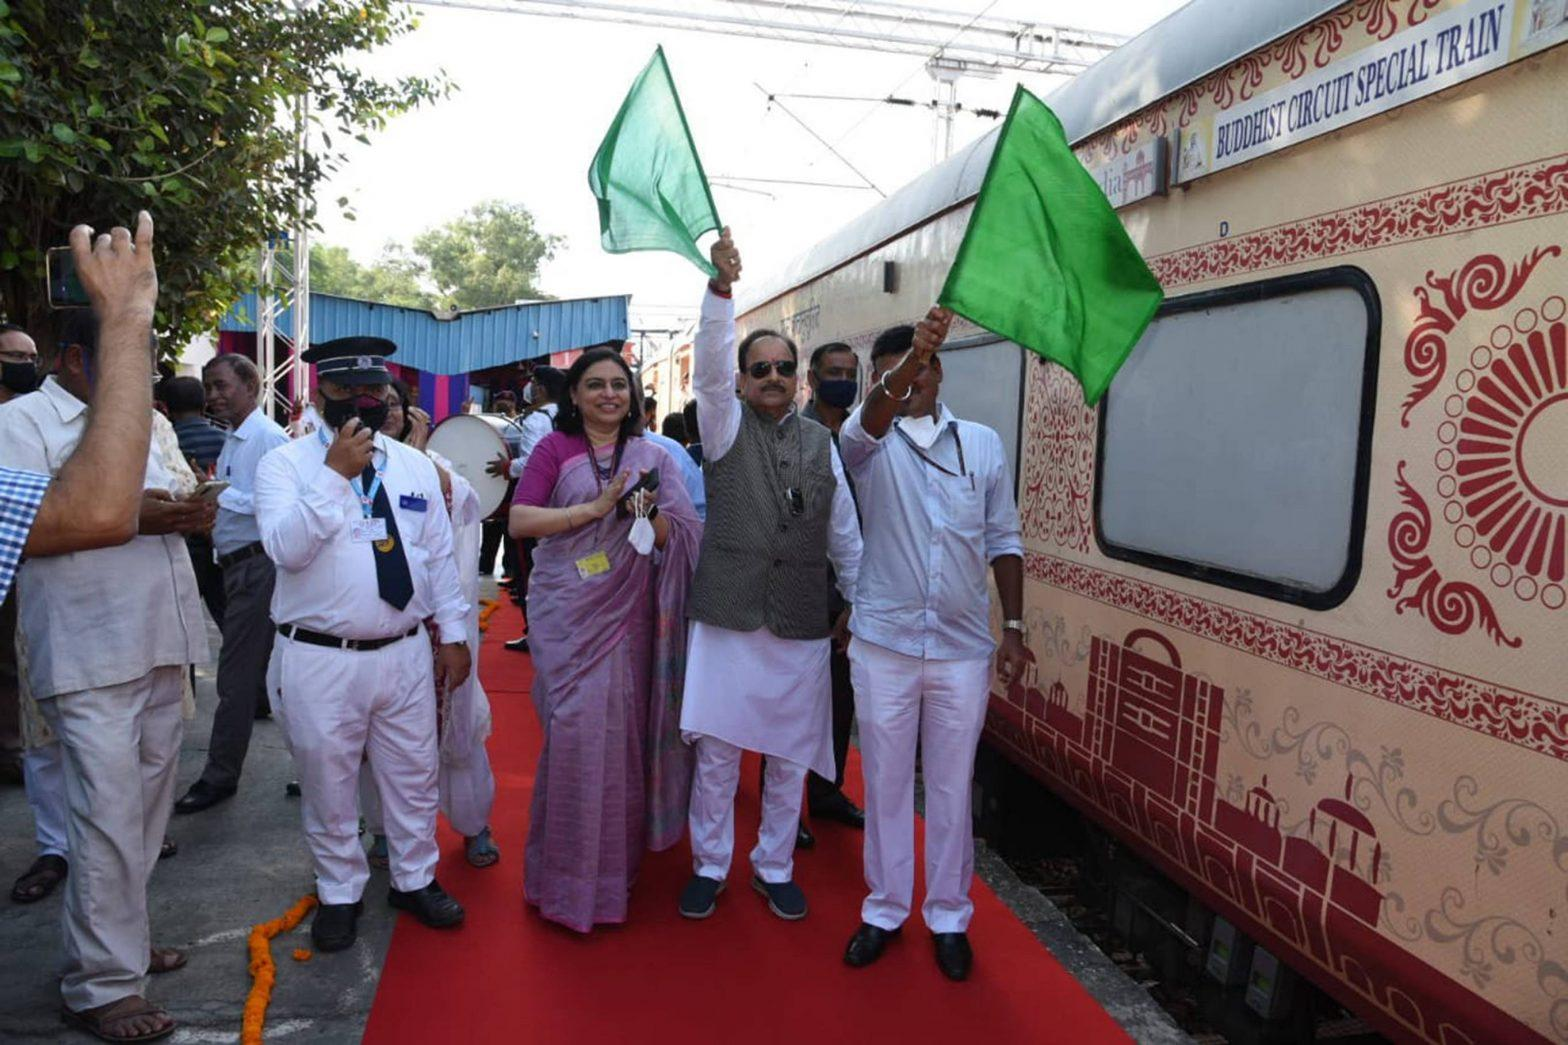 Centre organises 'Buddhist Circuit Train FAM Tour and Conference'_40.1